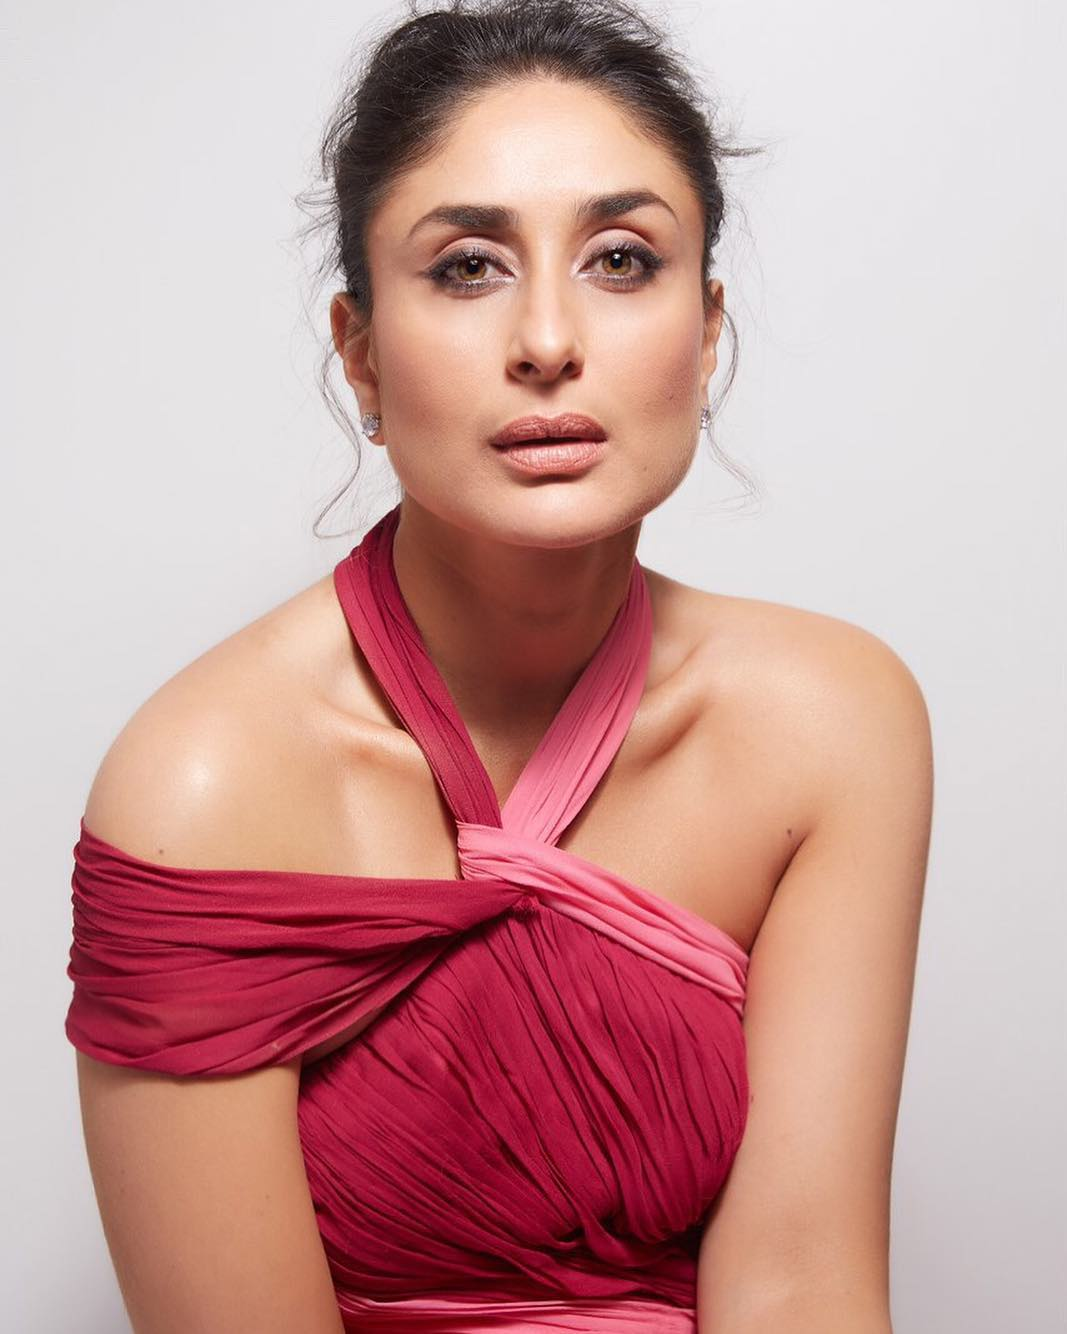 bollywood-hairstyles-celebrity-red-carpet-how-to-get-the-look %2819%29